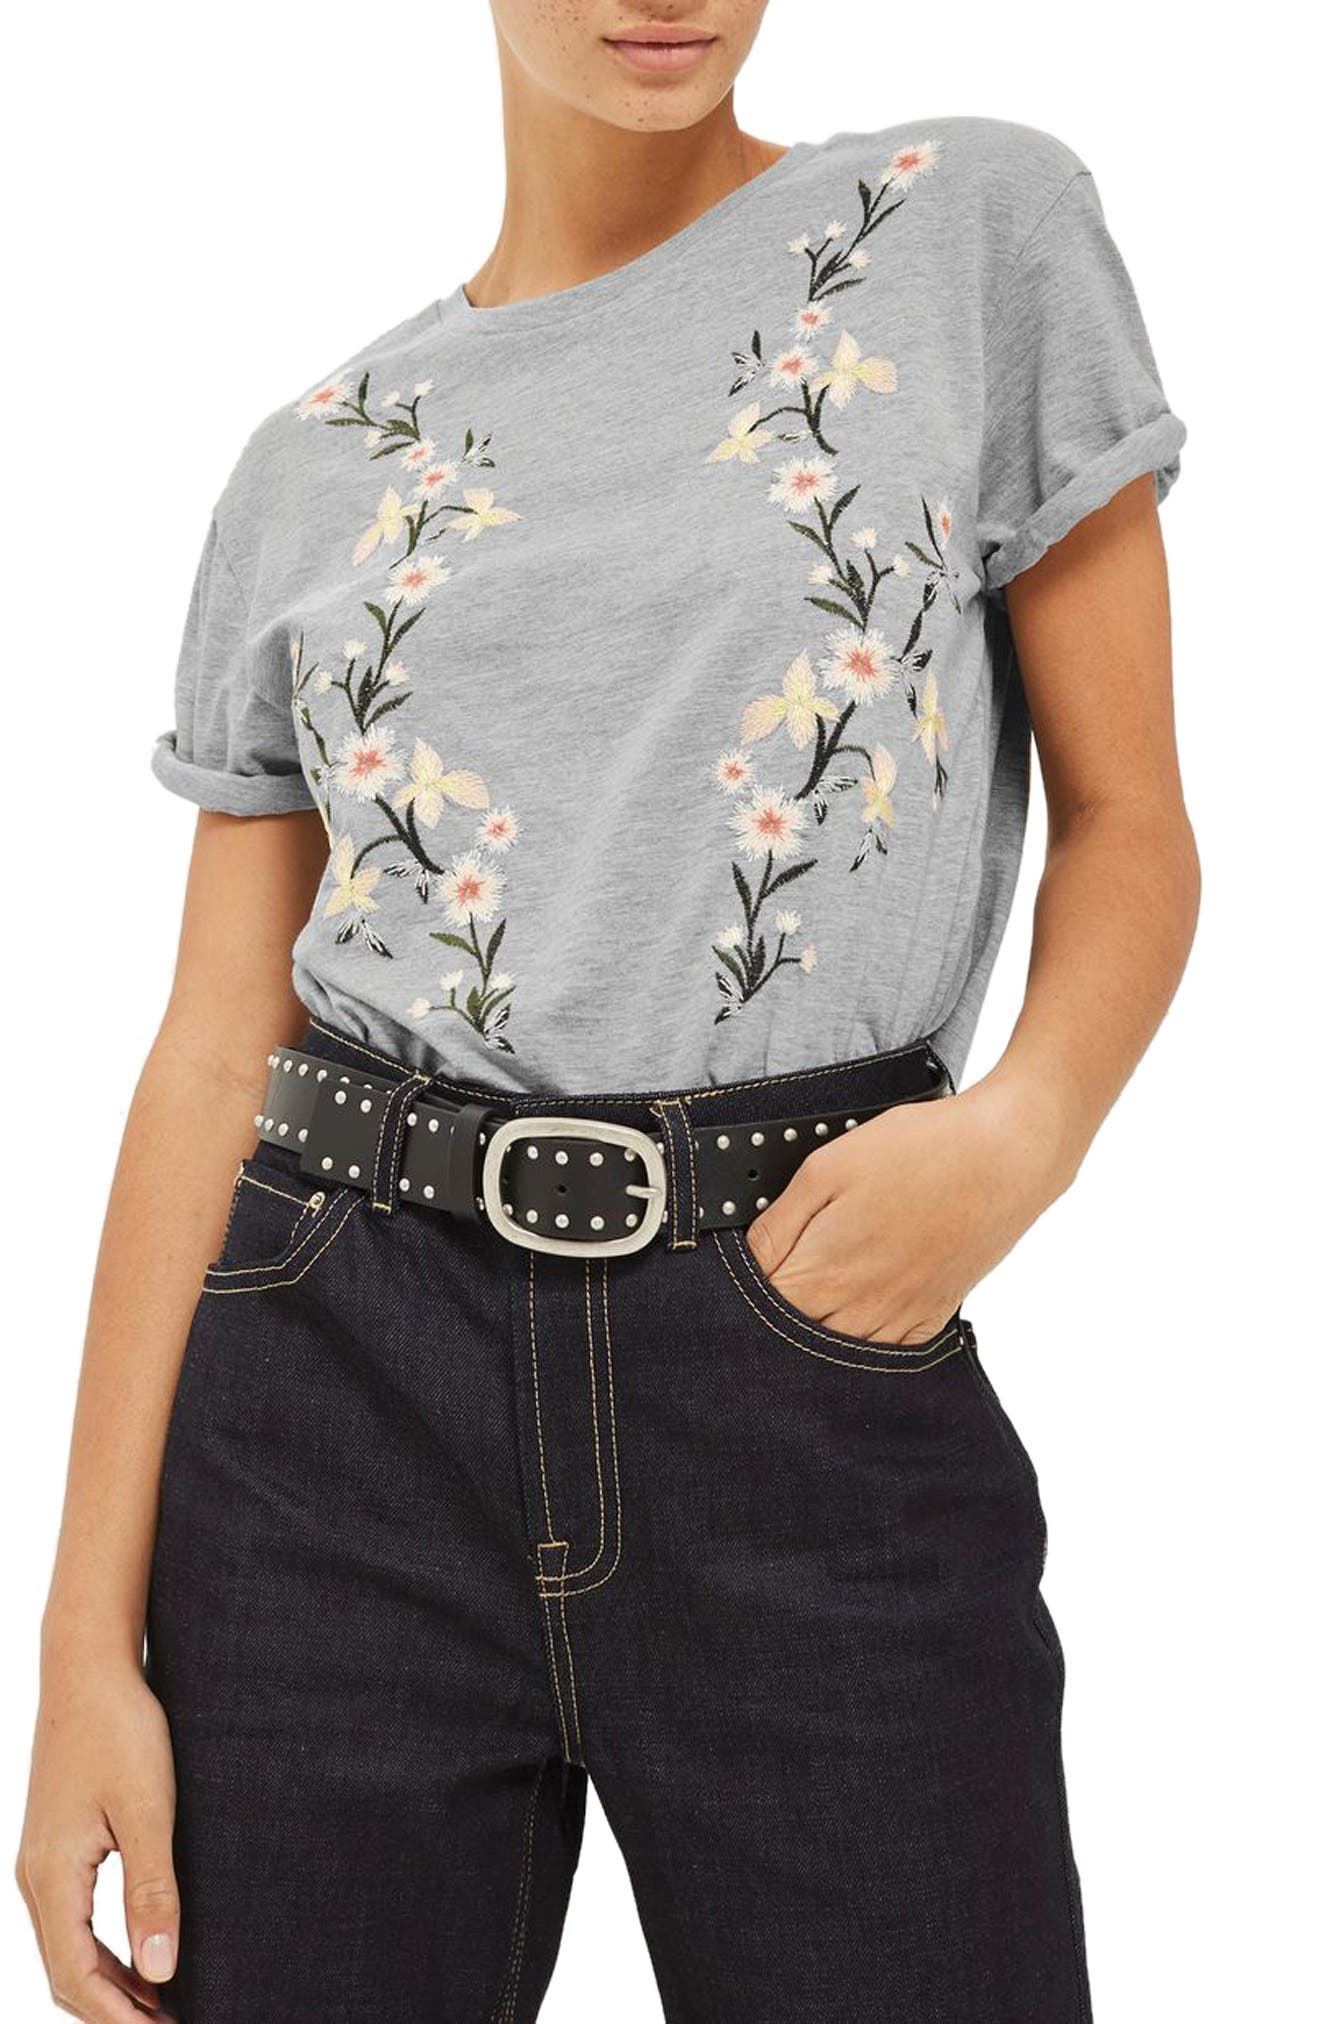 Topshop Floral Embroidered Tee